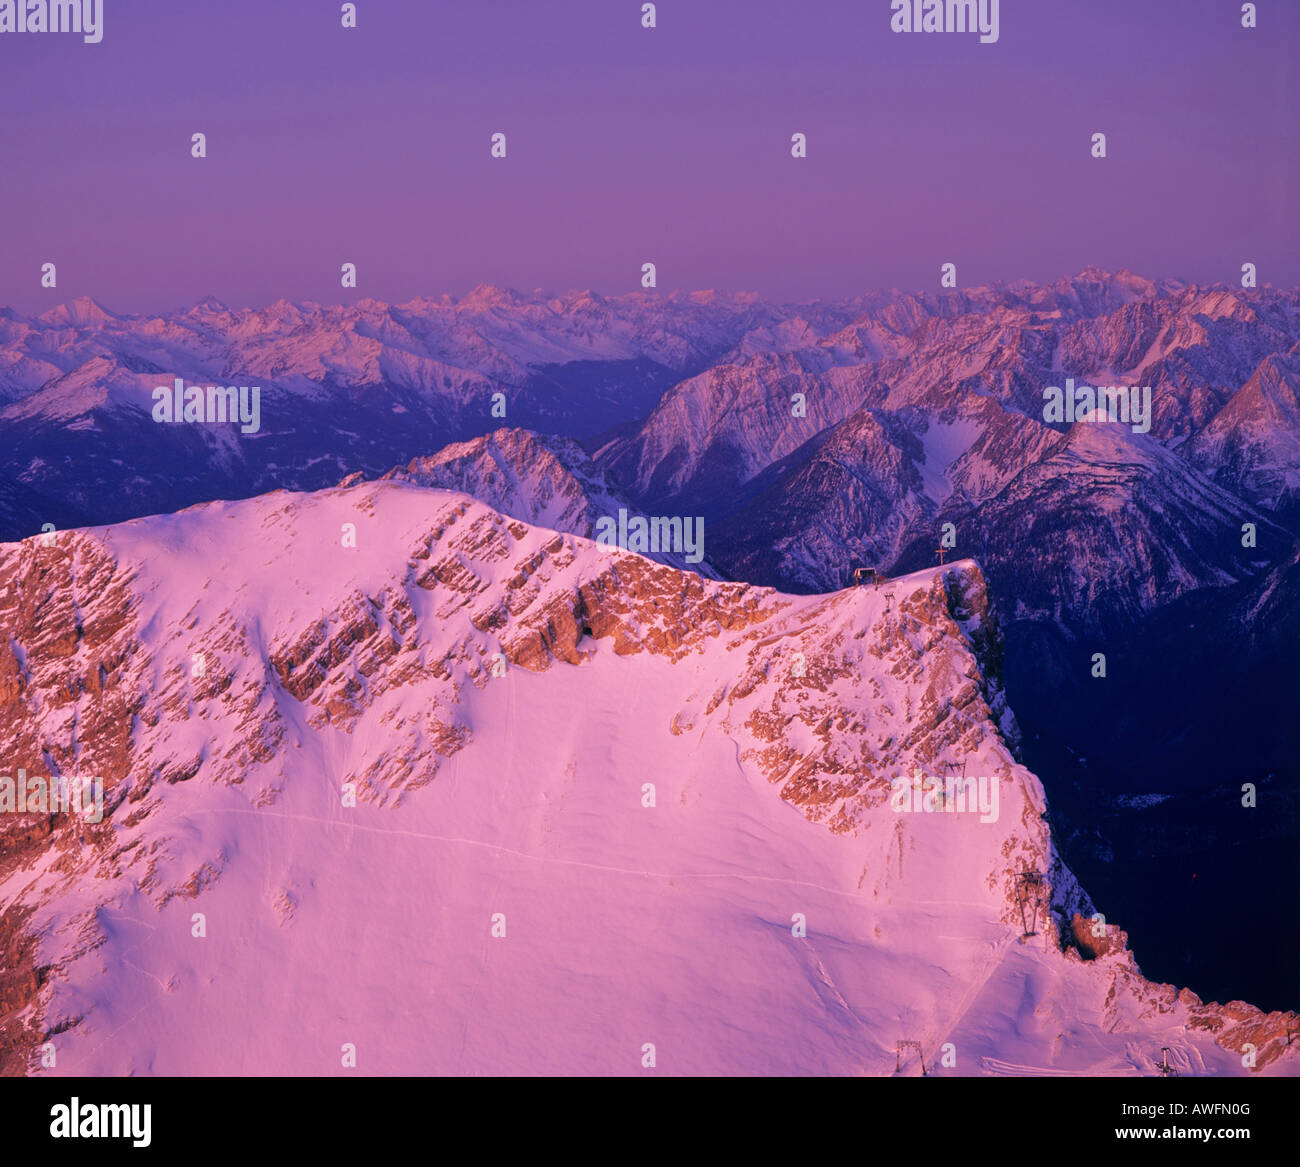 Panoramic view from Mt. Zugspitze toward the Lechtal Alps and Oetztal Alps, Upper Bavaria, Bavaria, Germany, Europe - Stock Image